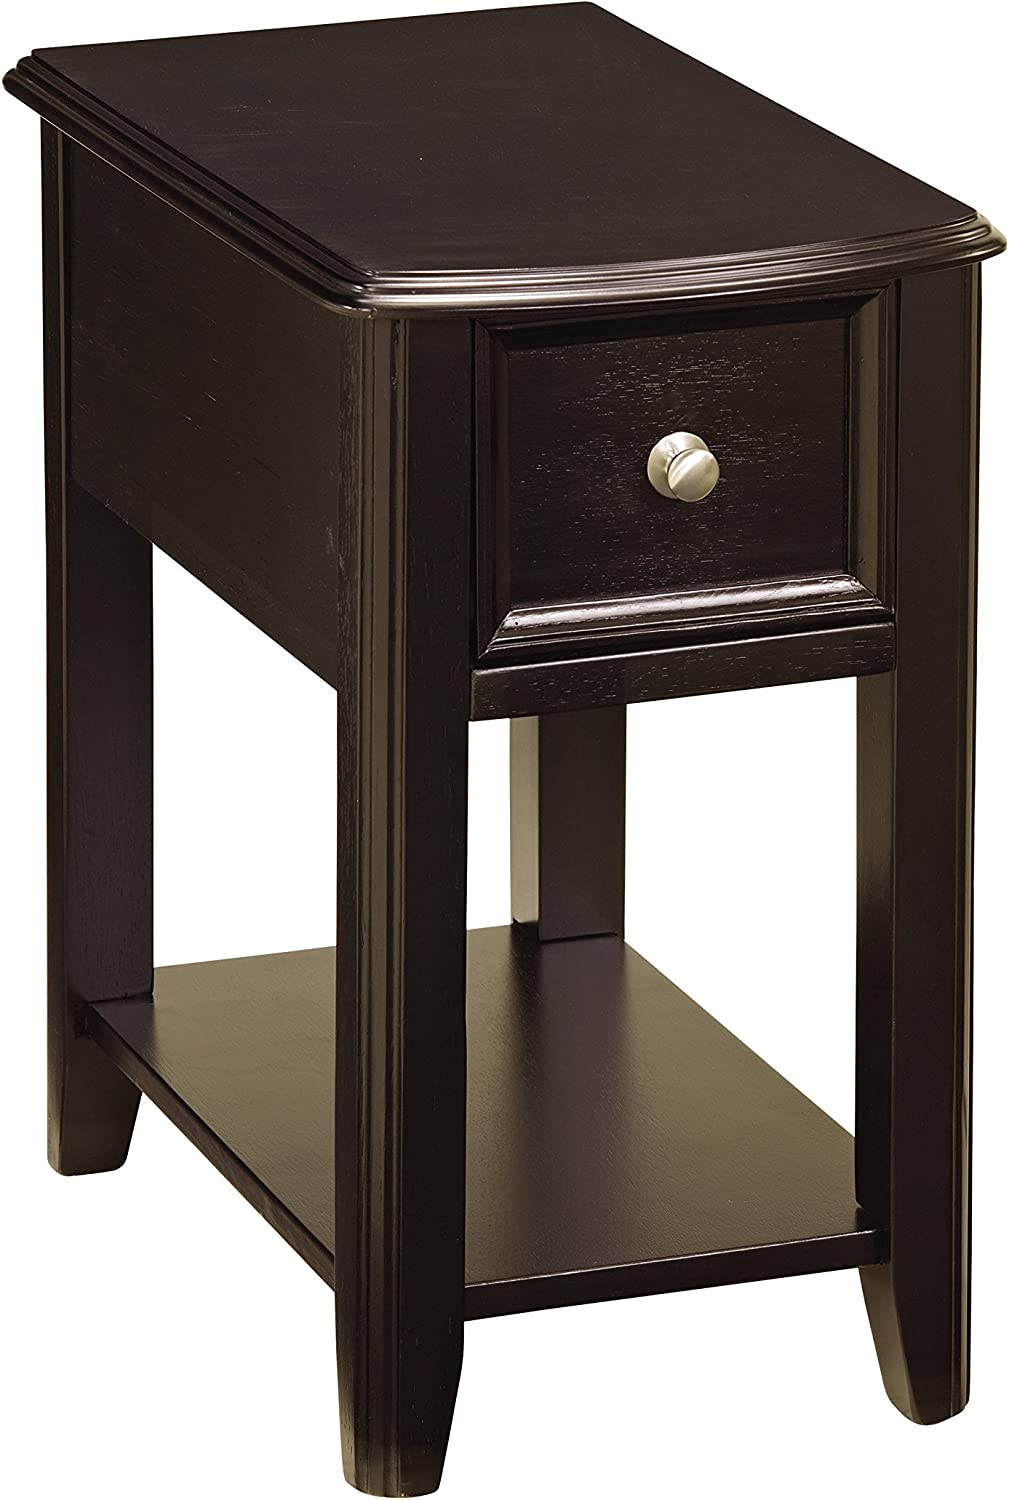 Signature Design by Ashley Contemporary Chair Side End Table Black Finish